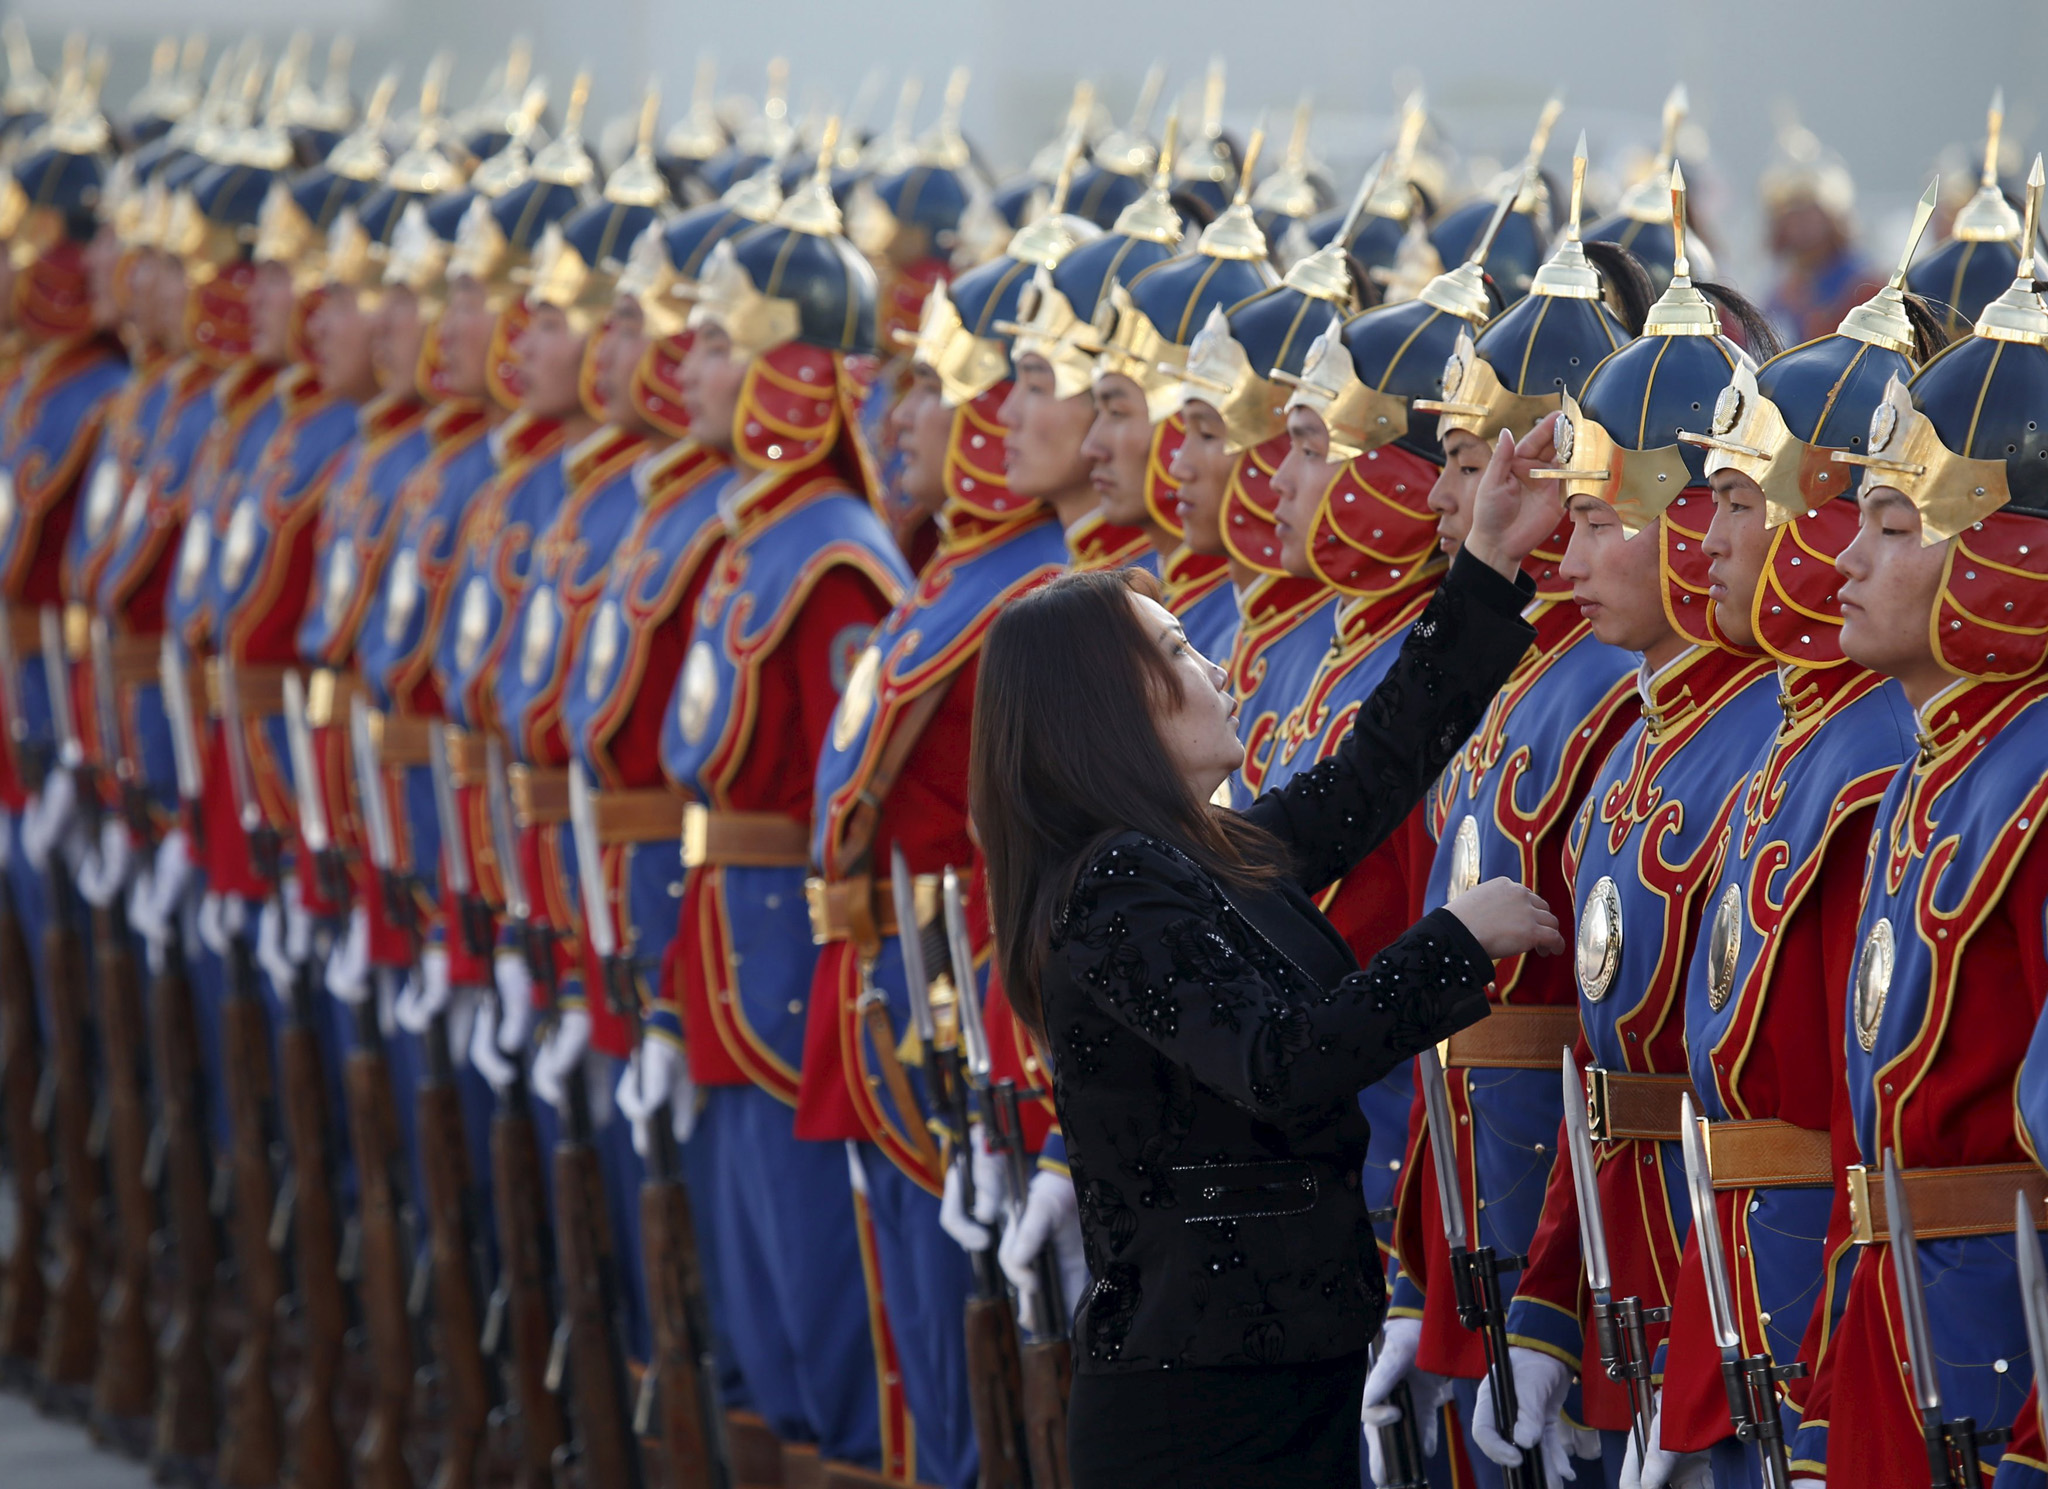 A woman adjusts the hat of a member of the honour guards